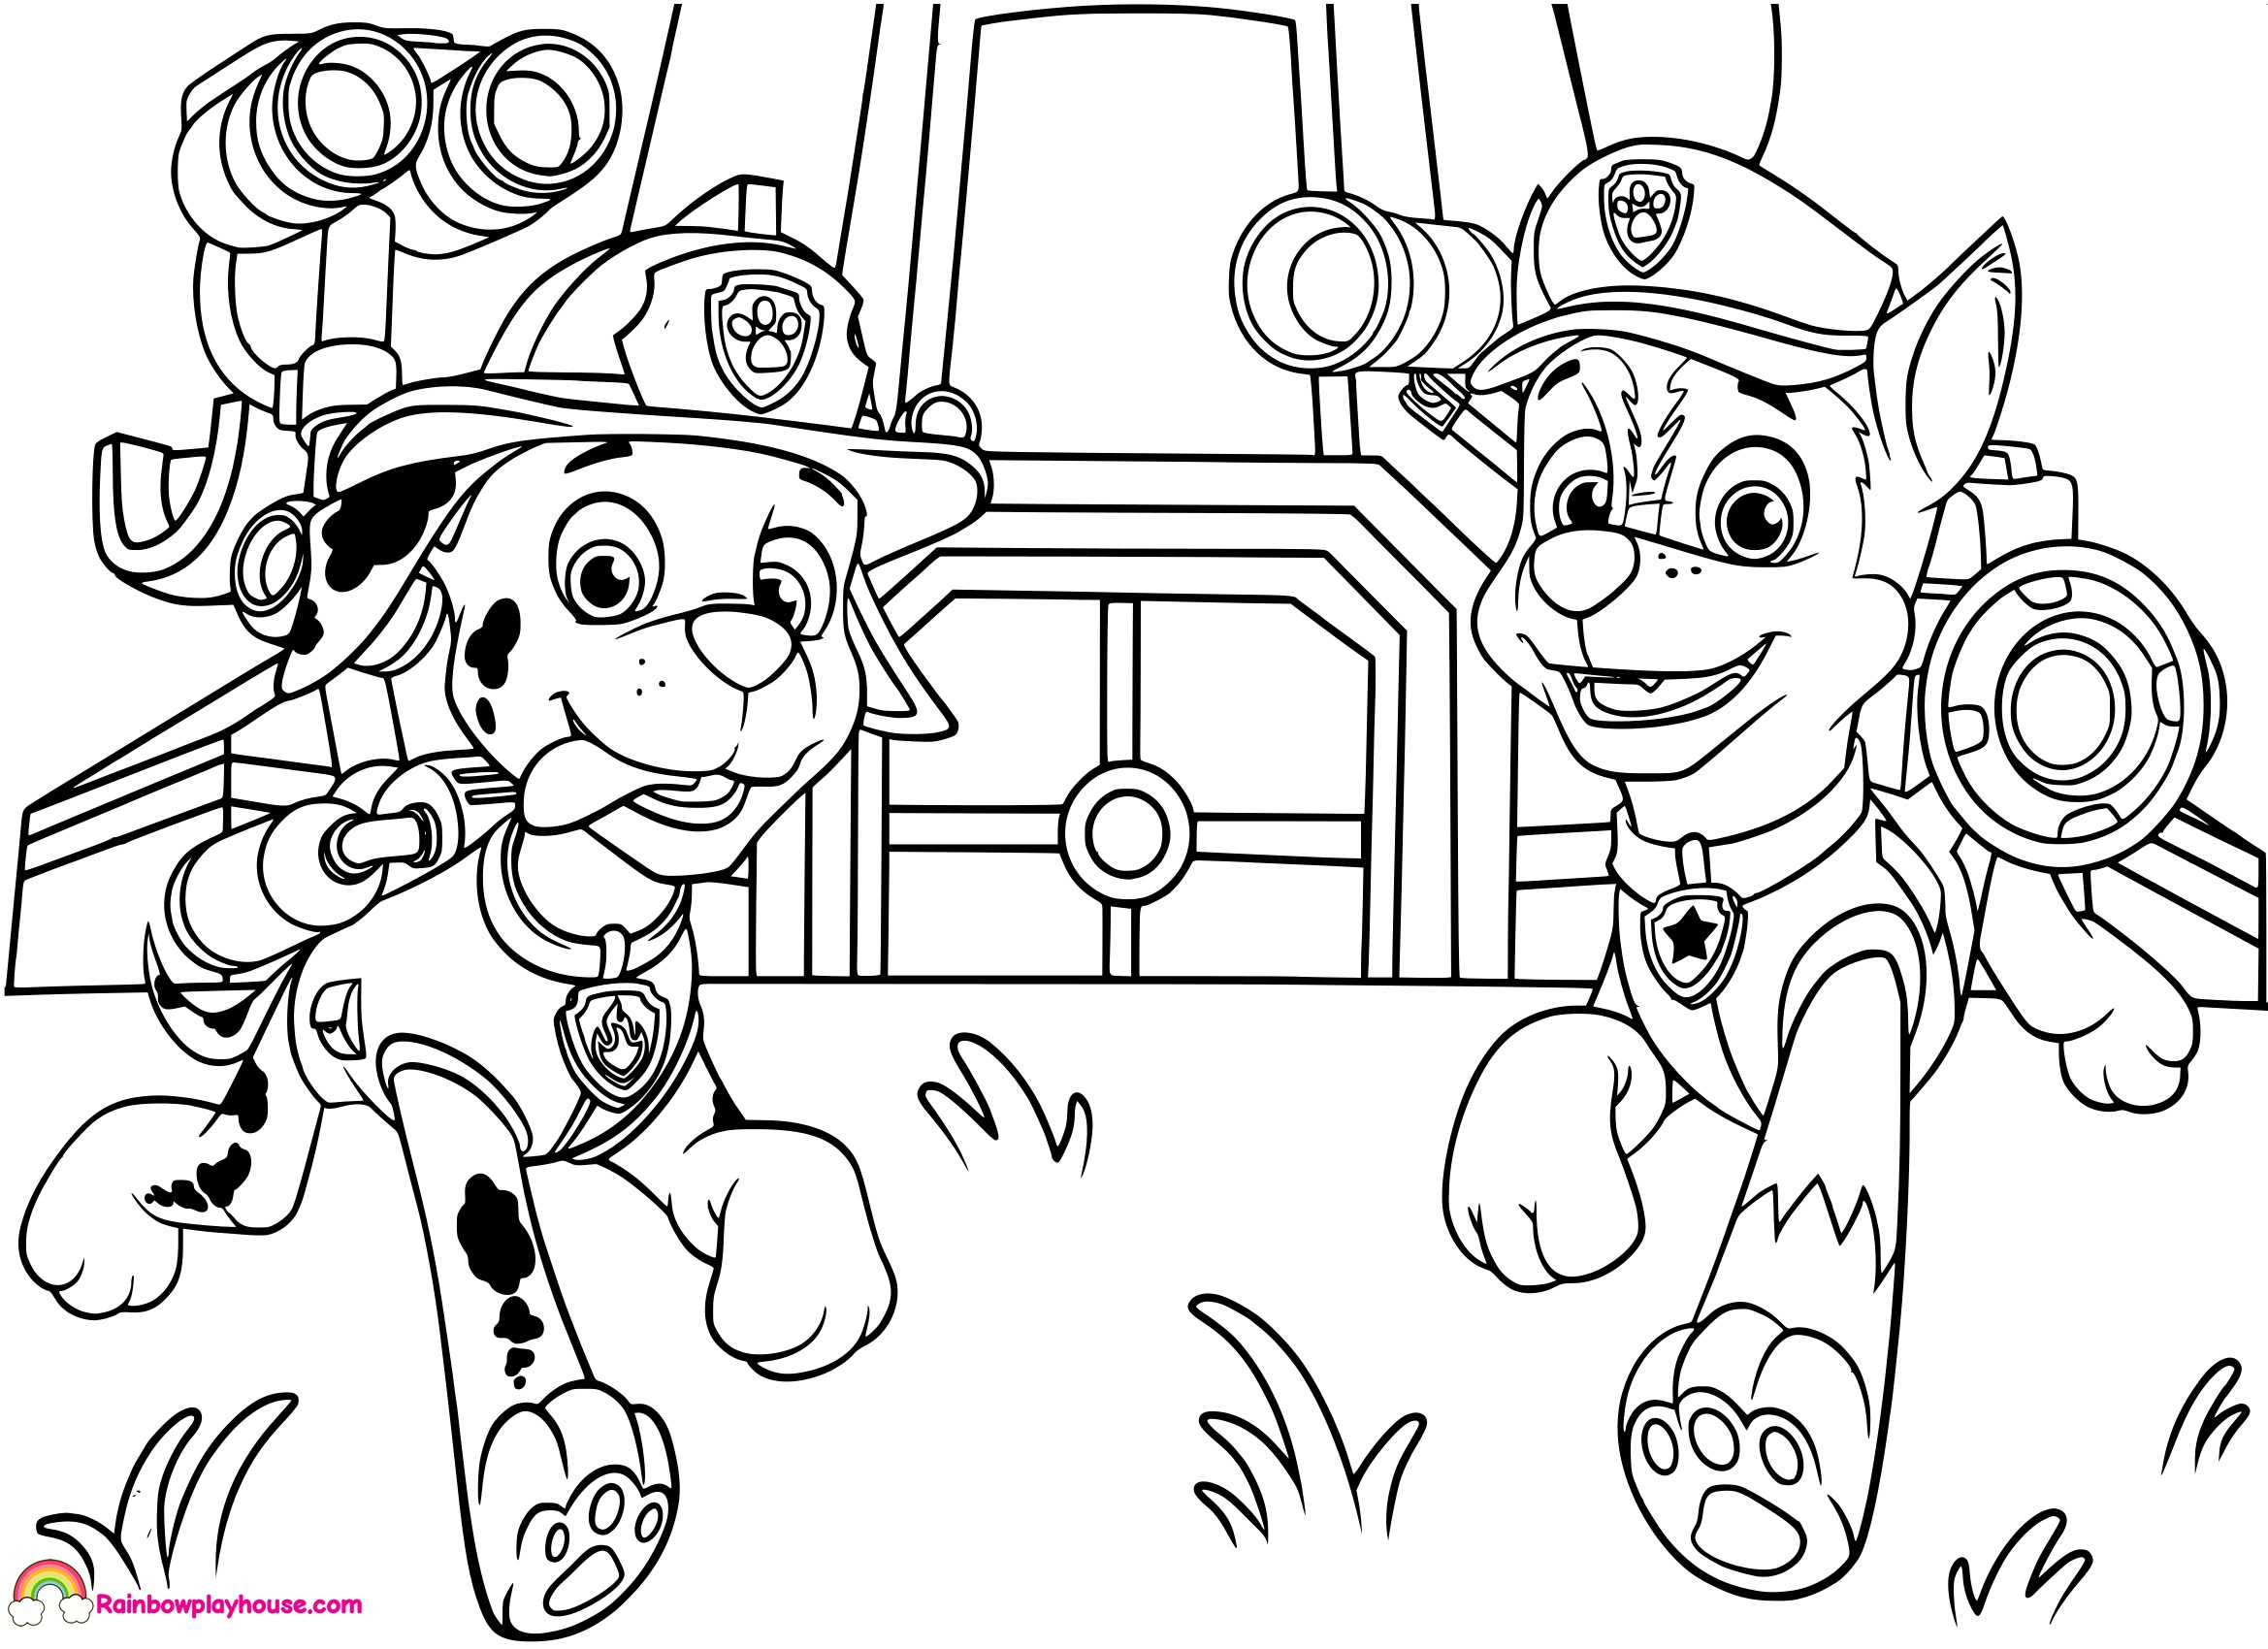 paw patrol coloring pages paw patrol coloring pages free download on clipartmag paw coloring patrol pages